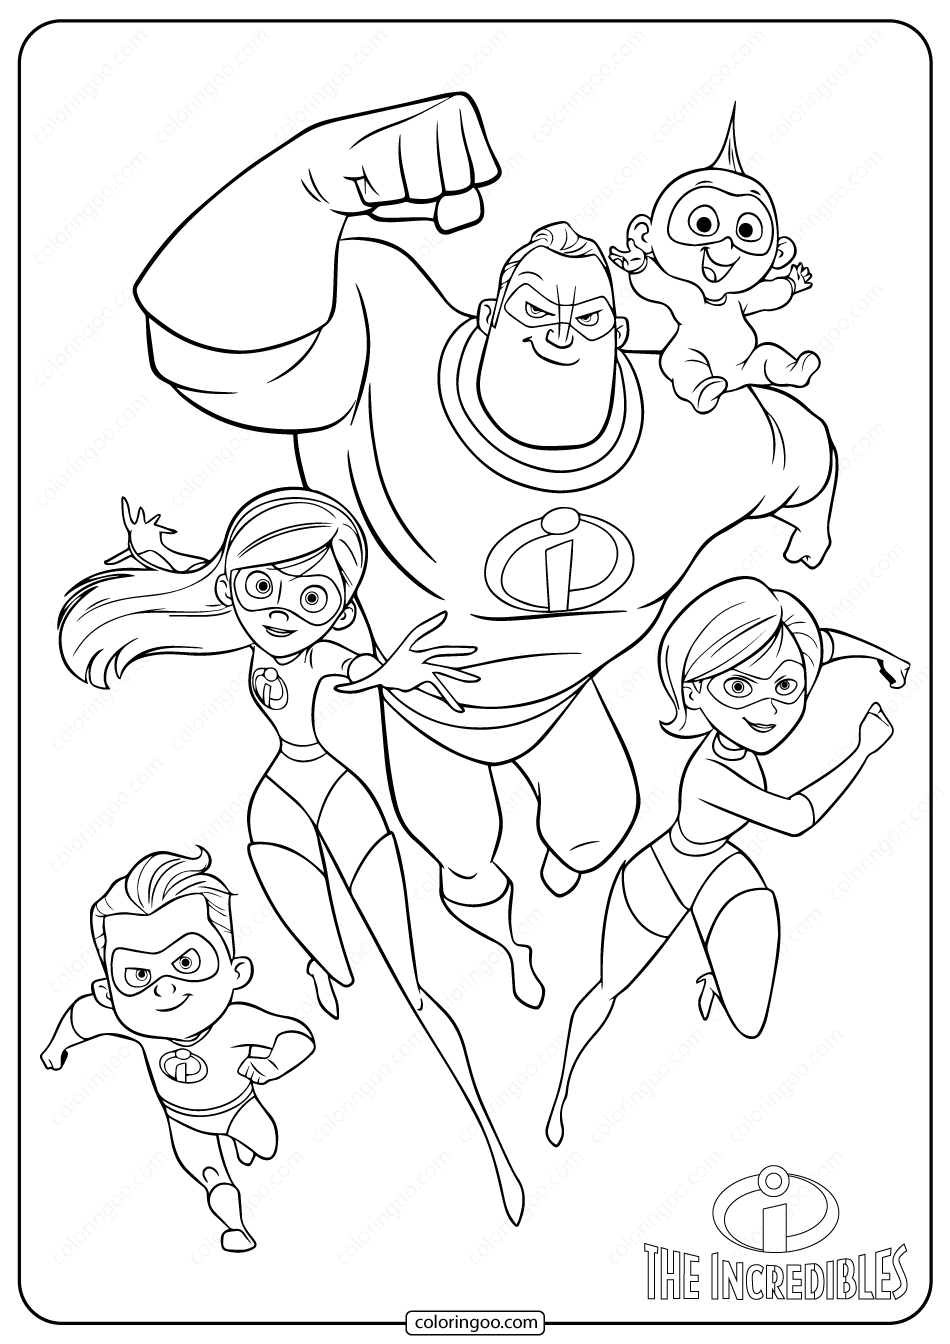 coloring pages disney incredibles disney the incredibles family coloring pages disney incredibles coloring pages